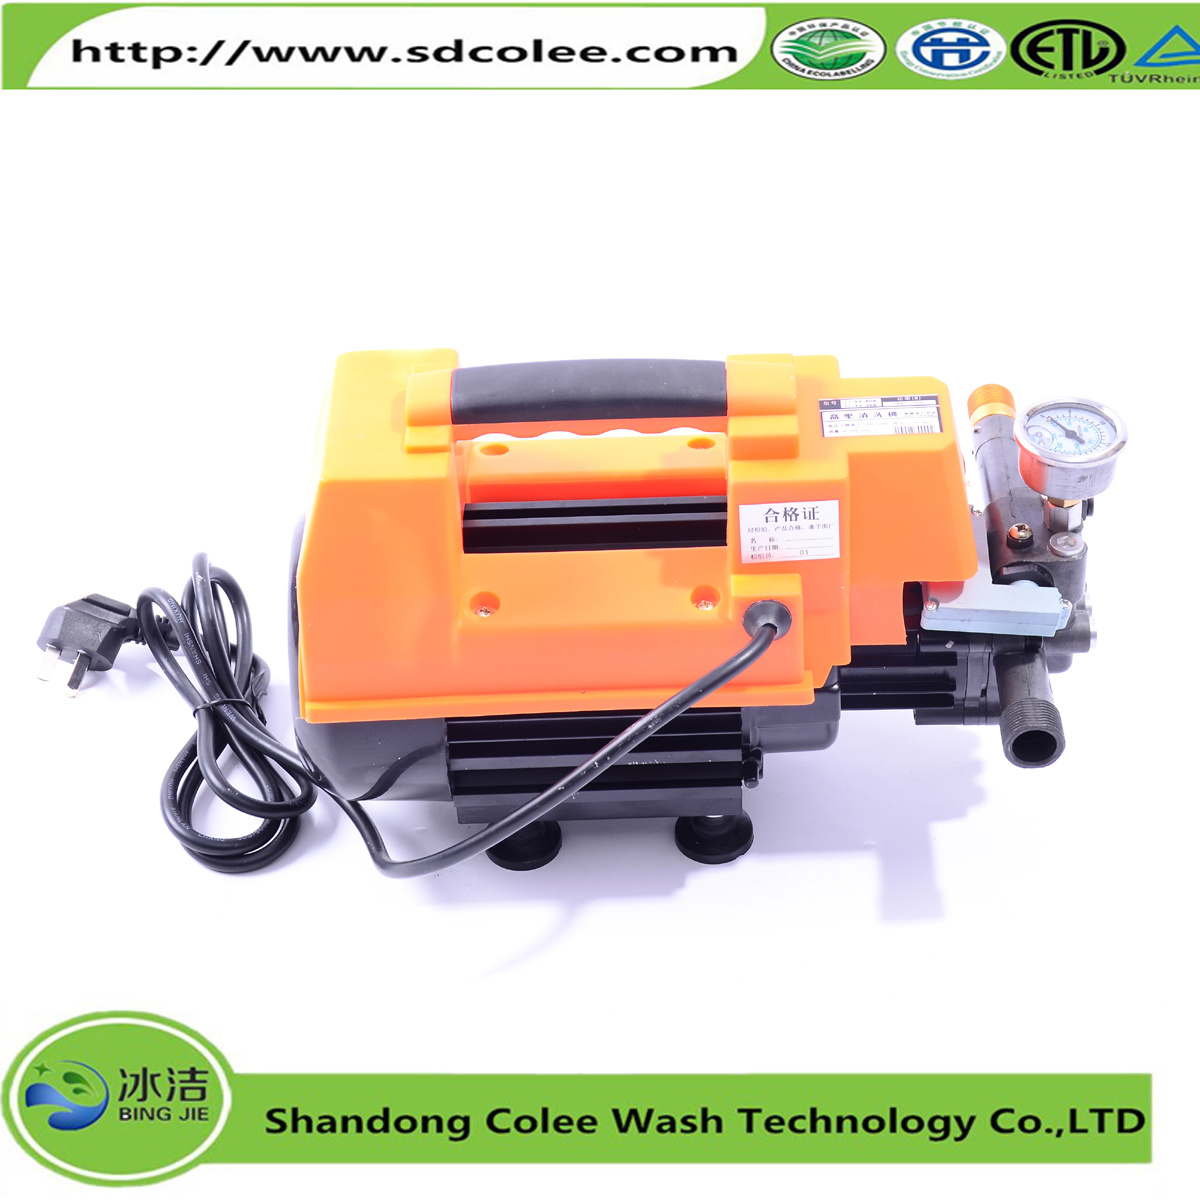 Portable High Pressure Cold Water Clening/Washing/ Tools for Family Use